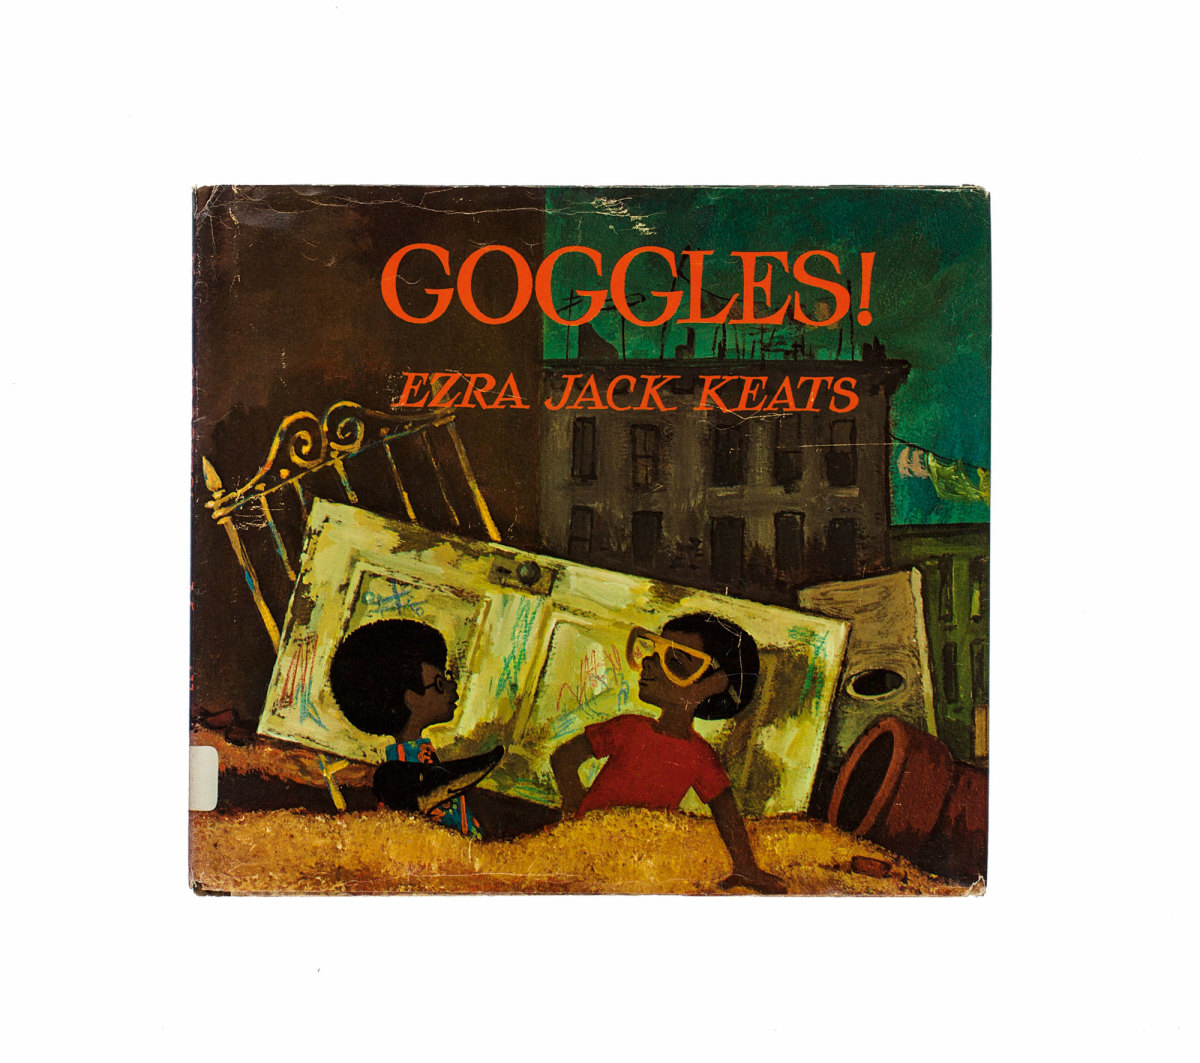 Goggles by Ezra Jack Keats (the author of The Snowy Day) is about two young boys who encounter older bullies, who try to take away a new-found treasure.